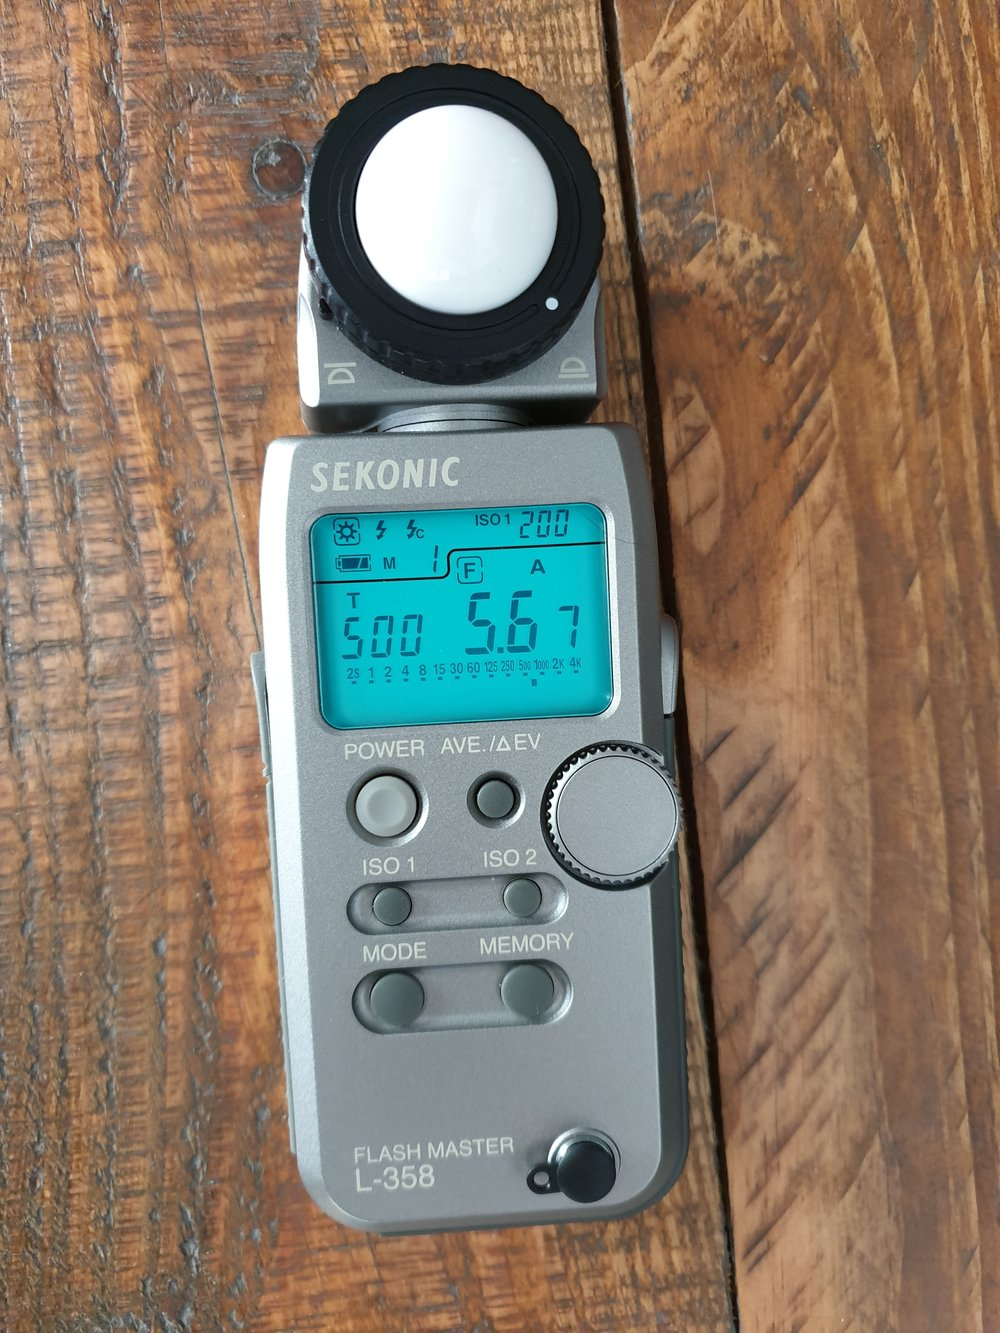 Sekonic L358 light meter